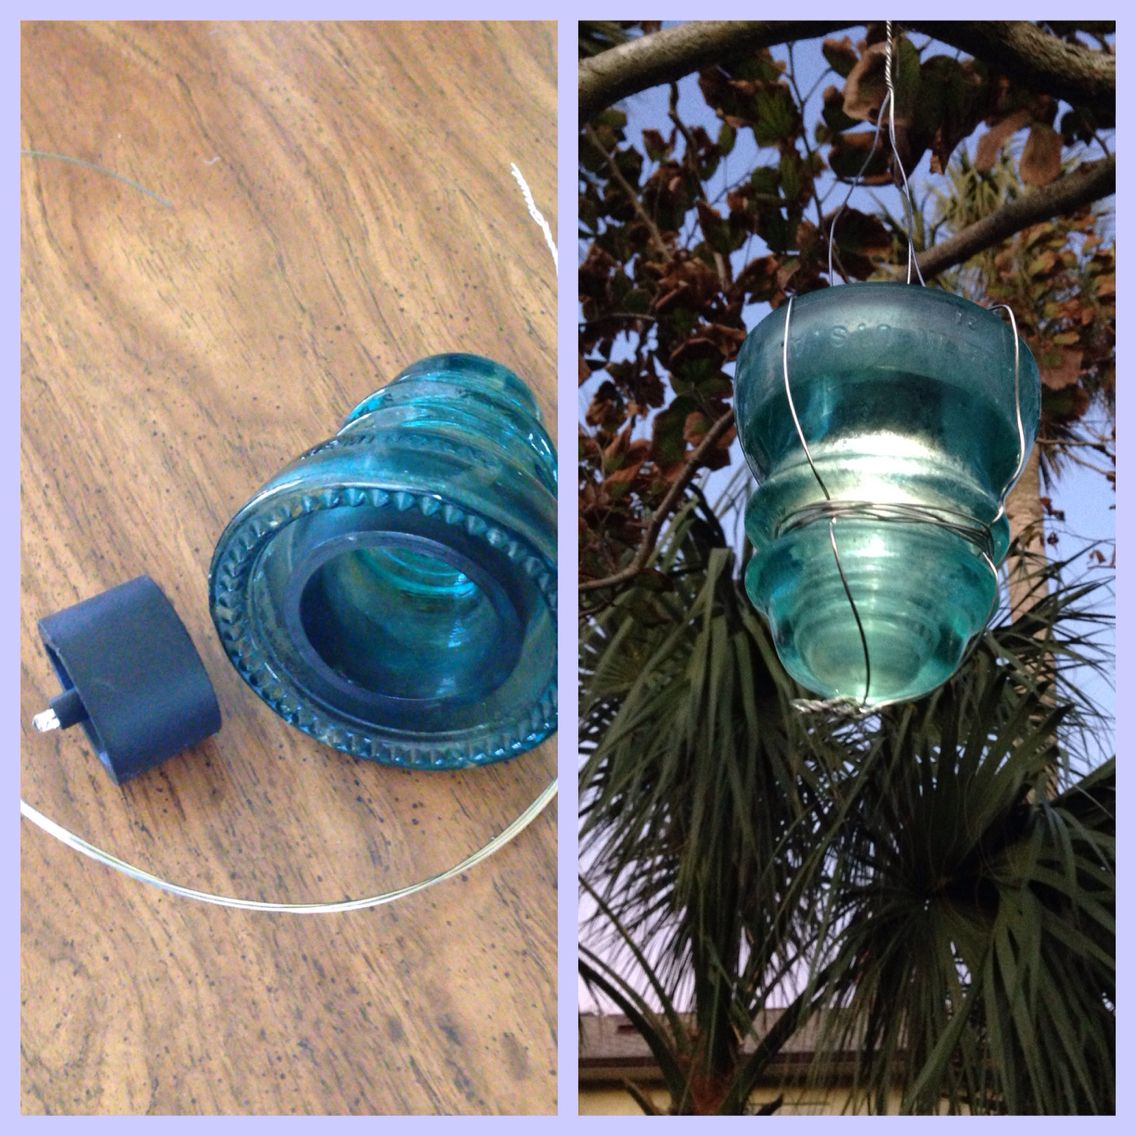 Wire, insulator and $1 solar light from Walmart makes this great ...